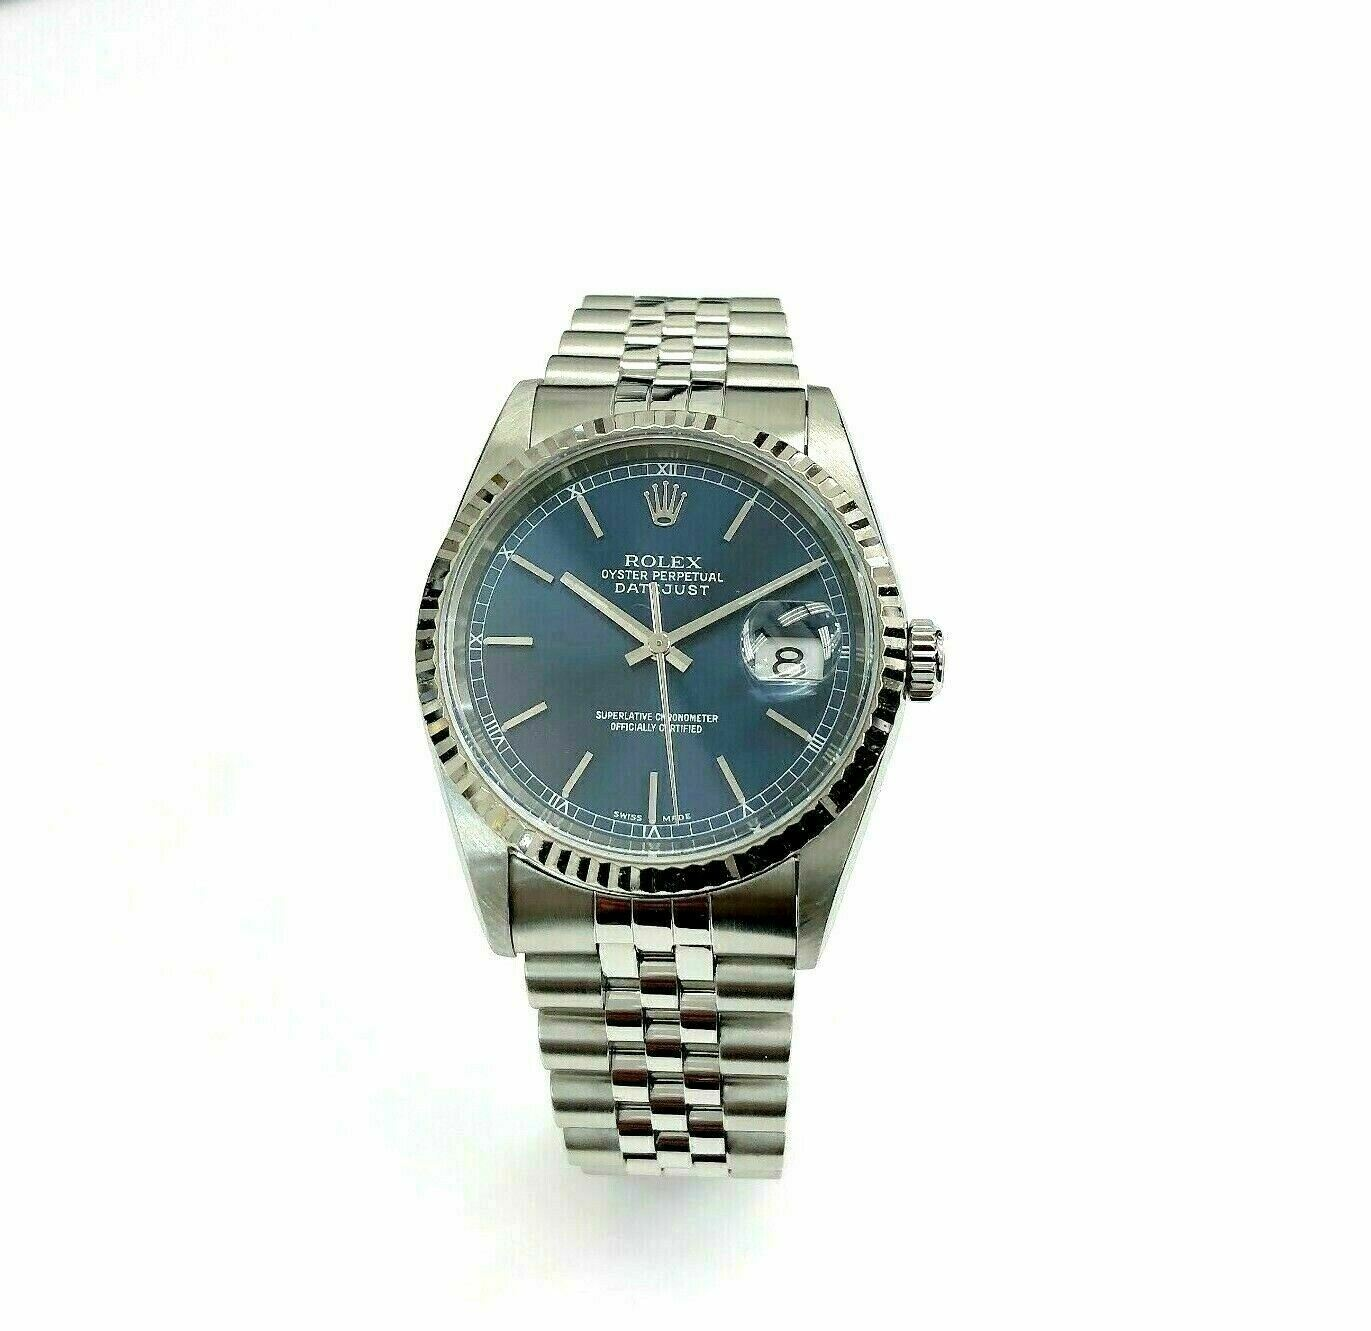 Rolex 36MM Datejust Watch 18K/Stainless Steel Ref # 16234 Factory Blue Dial QSet